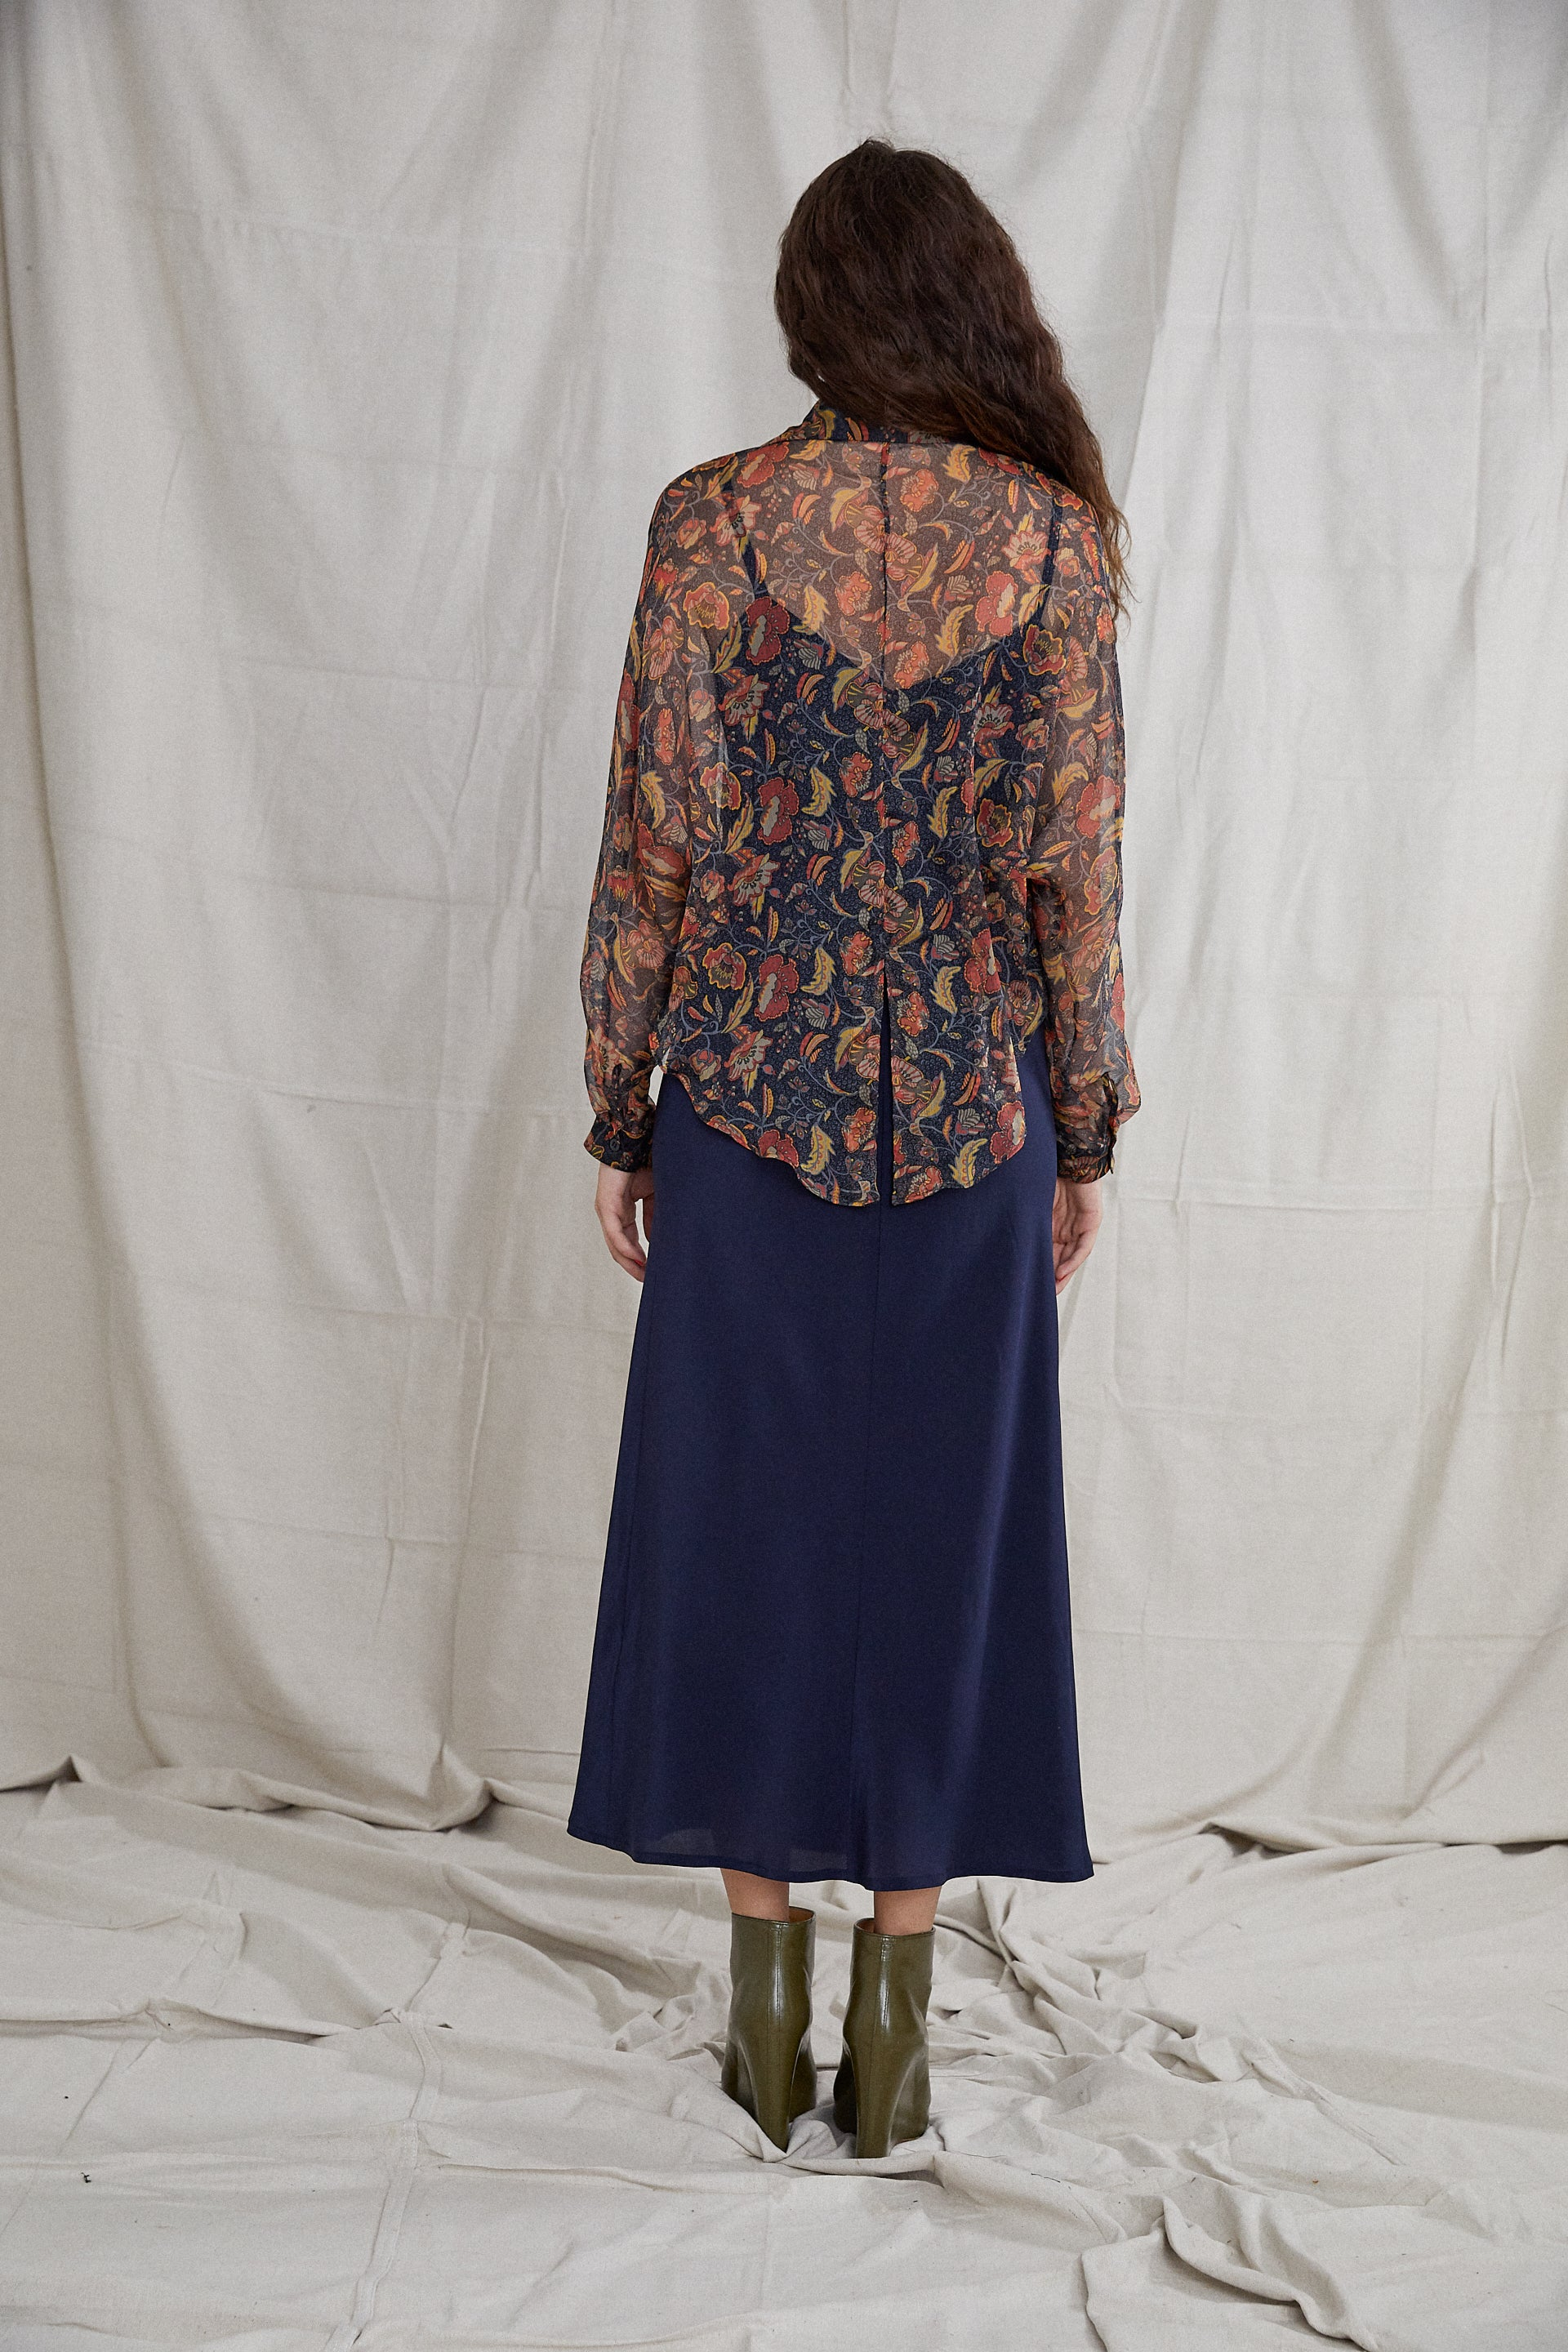 Segdah Shirt - Poppy Silk Georgette